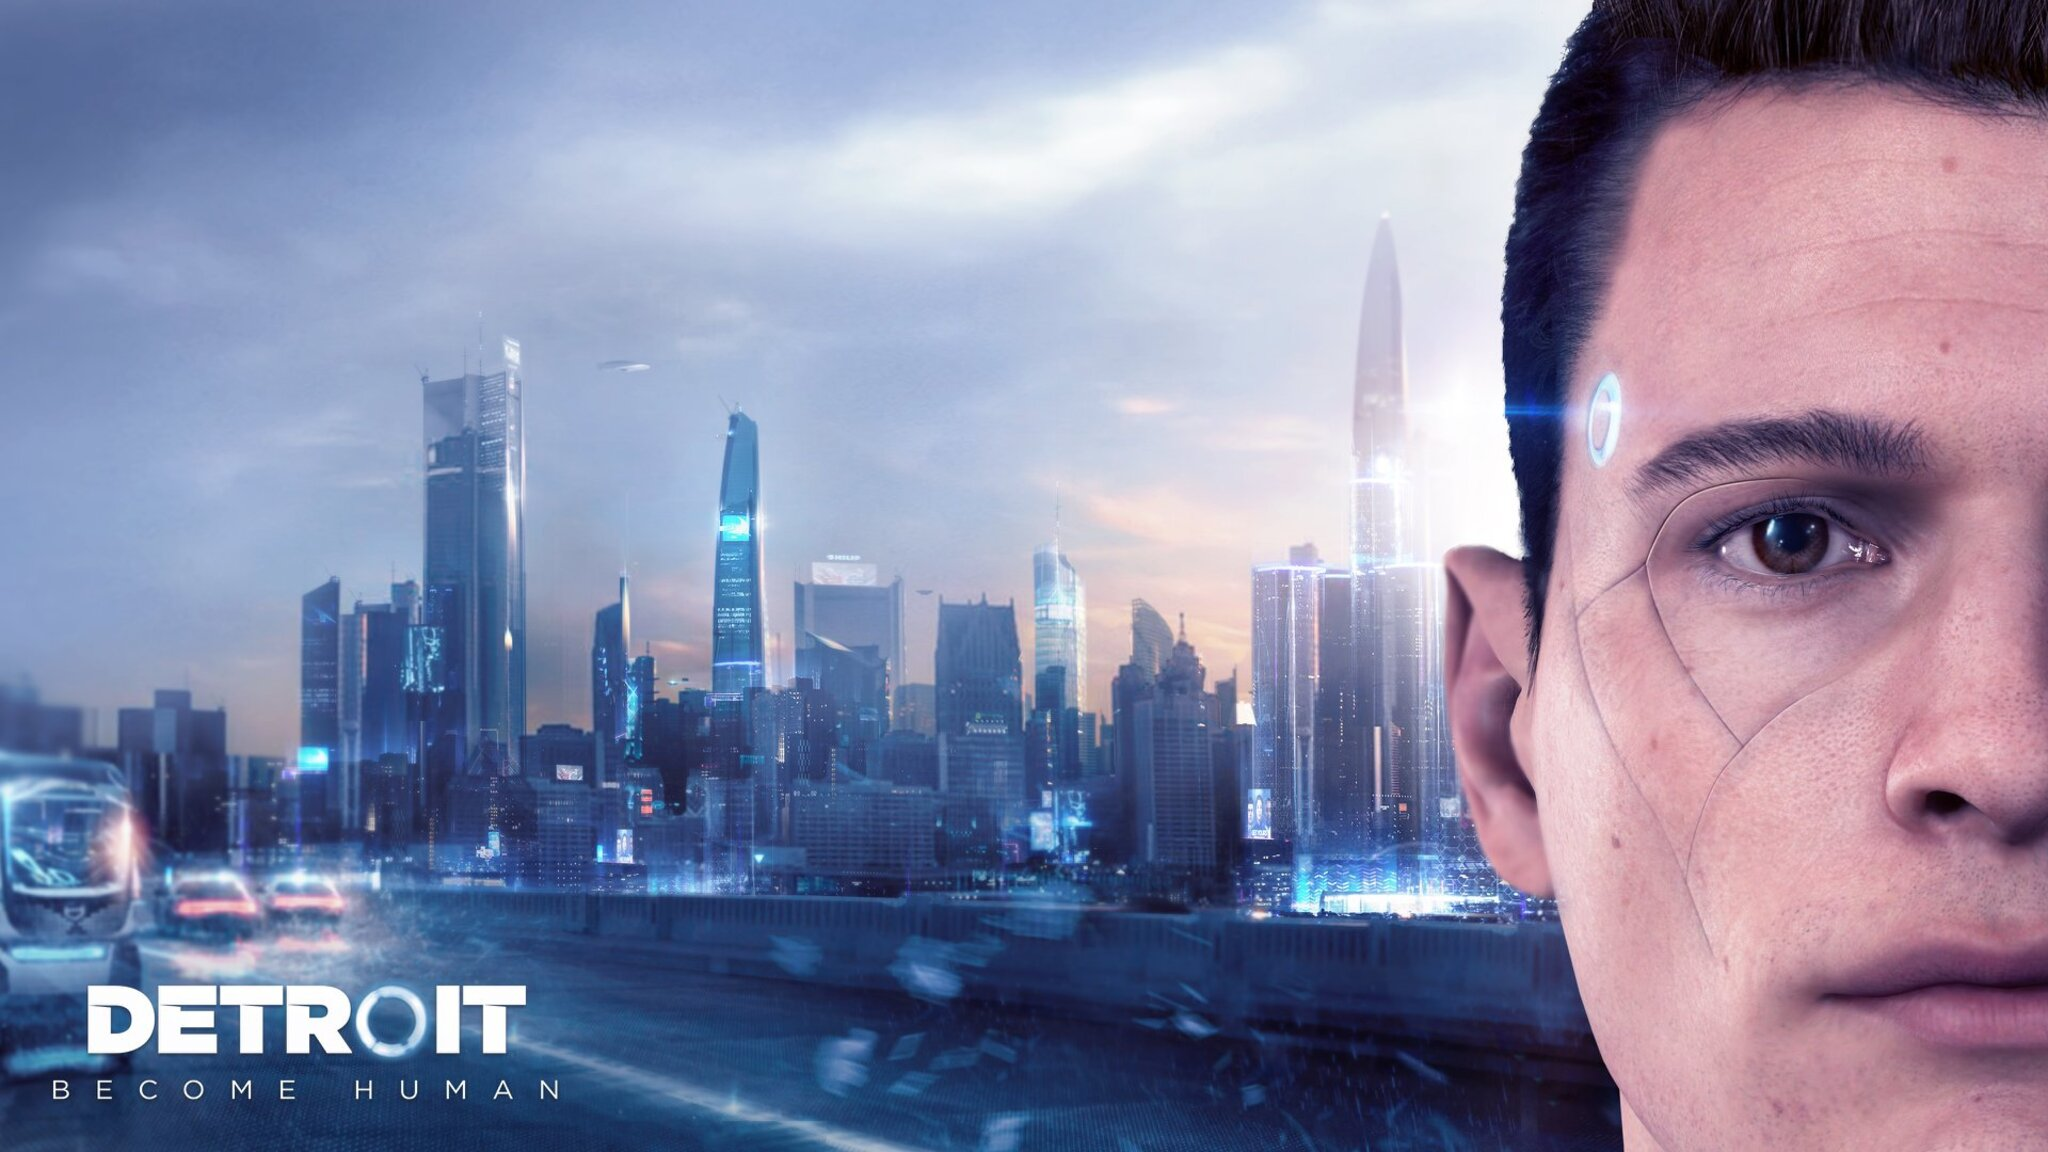 Connor Detroit Become Human Wallpaper: 2048x1152 Connor Detroit Become Human 2048x1152 Resolution